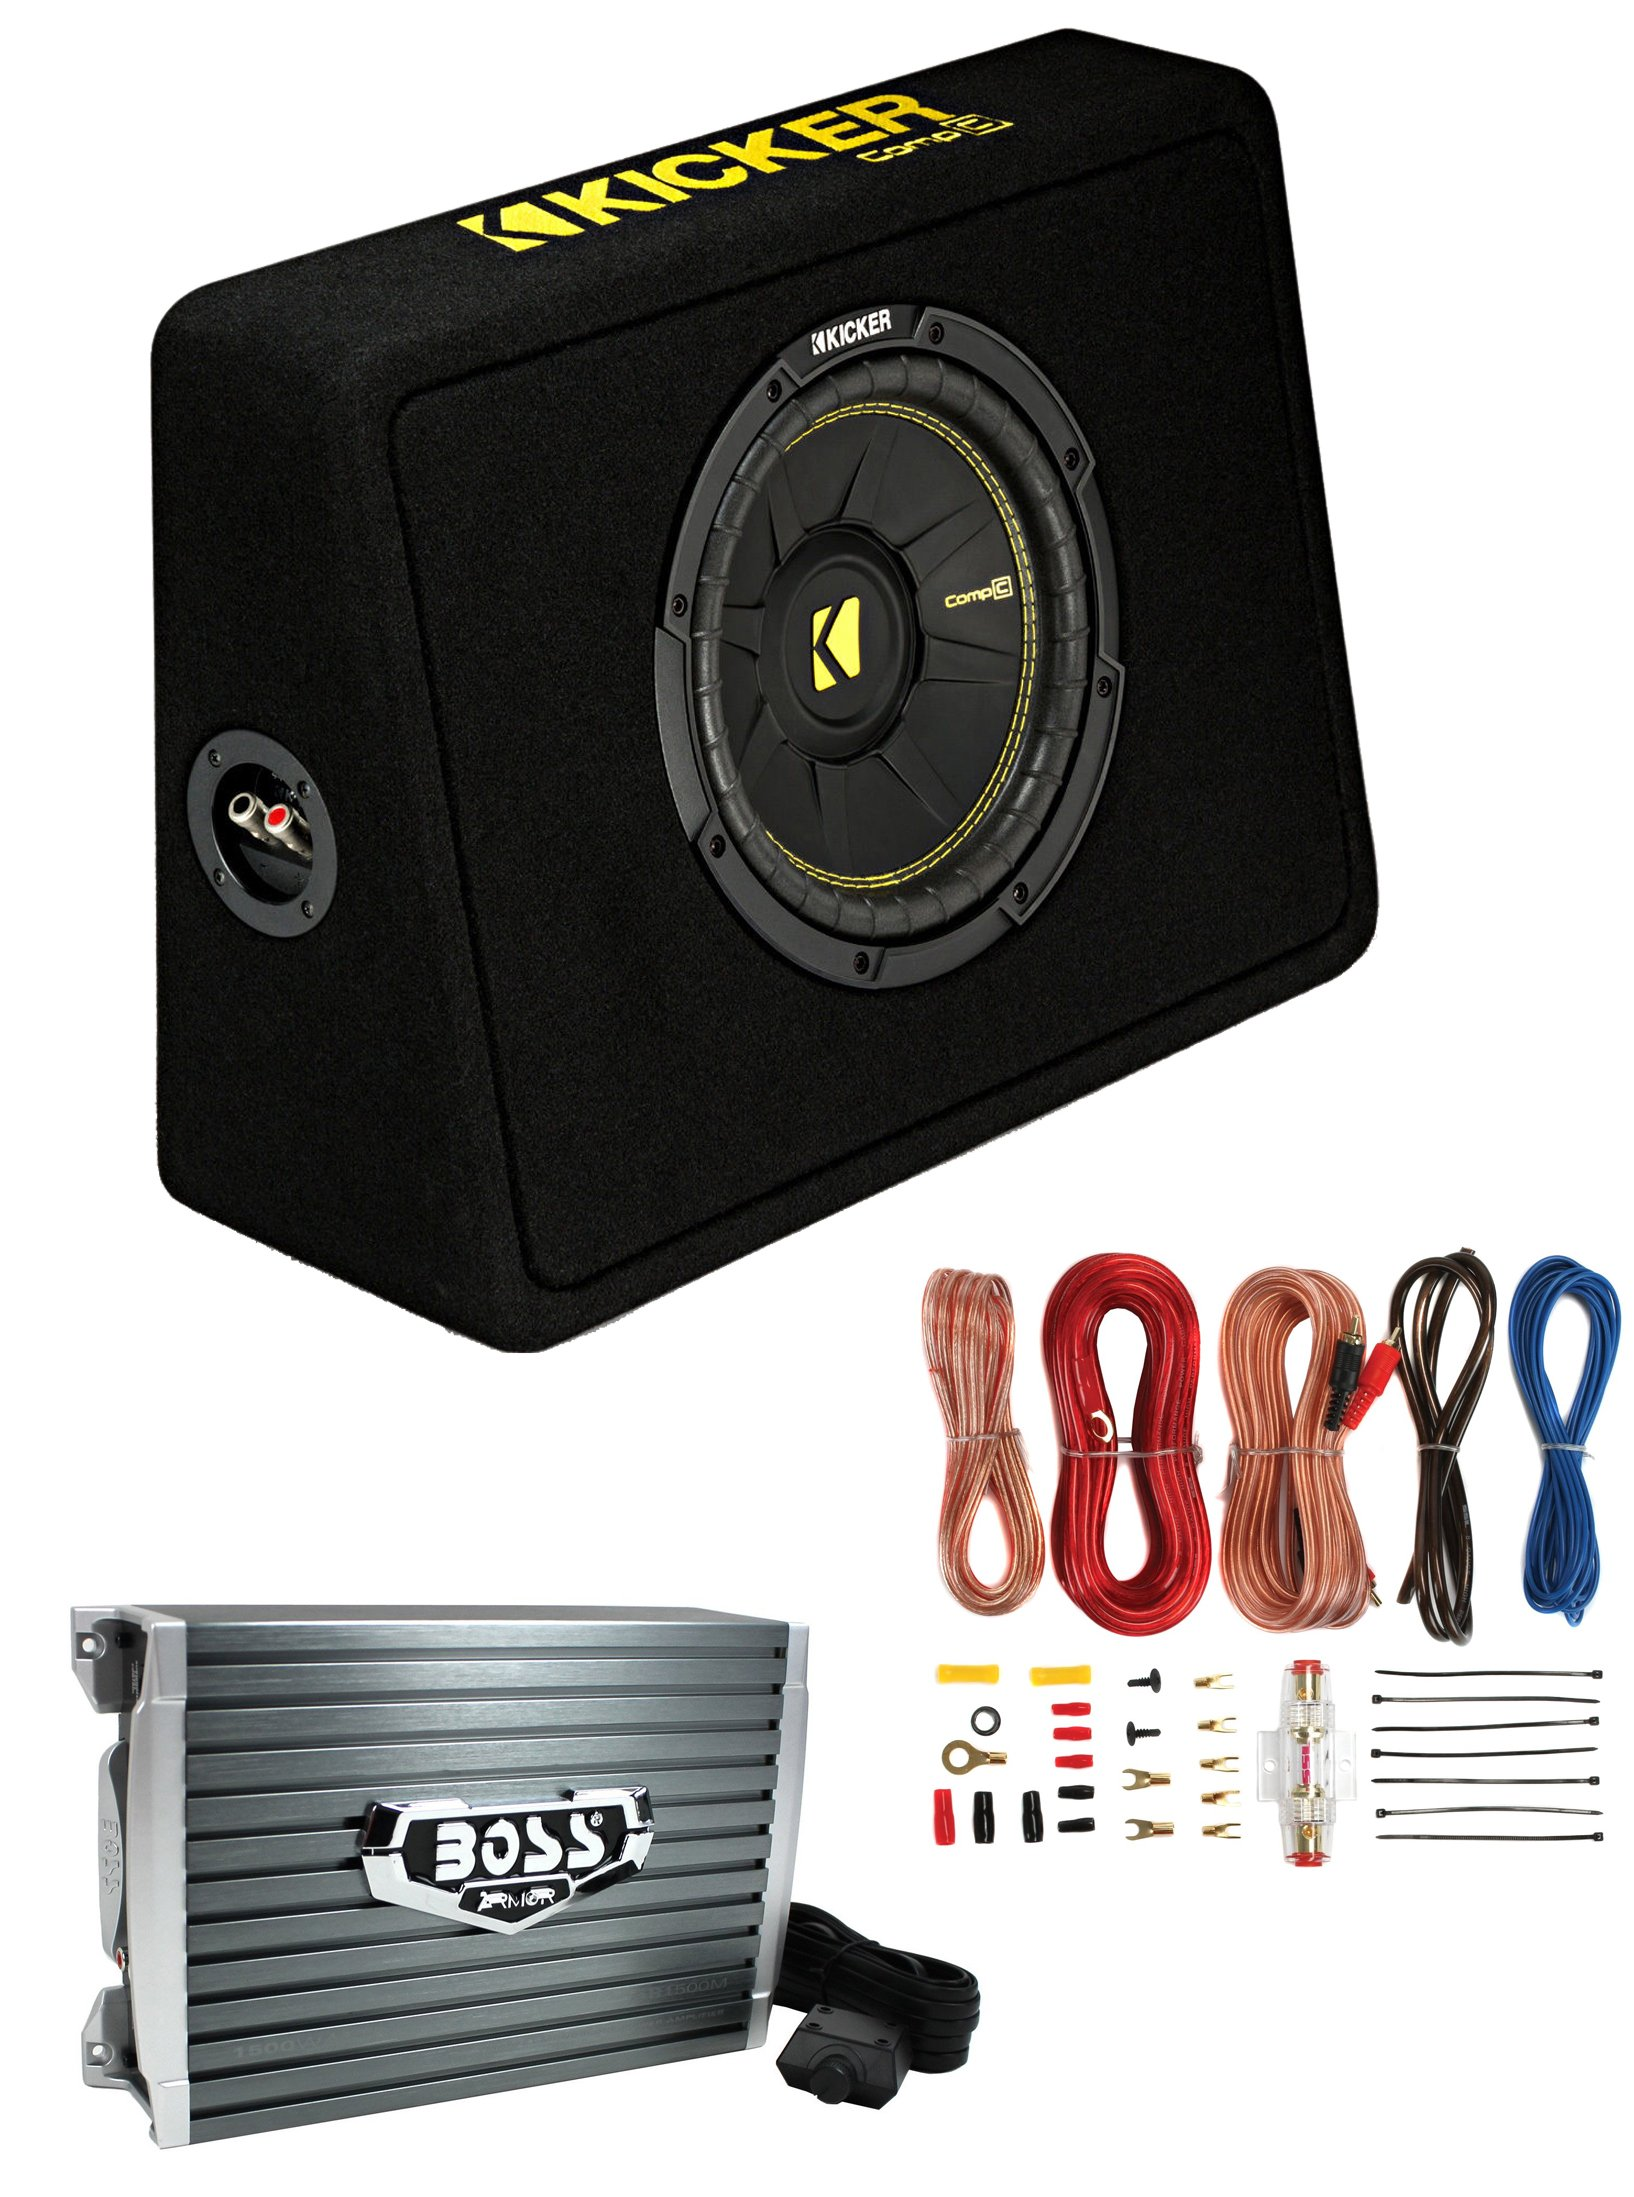 Kicker 44TCWC102 10'' 600W Subwoofer Box+Boss AR1500M 1500W Mono Amp +Amp Kit